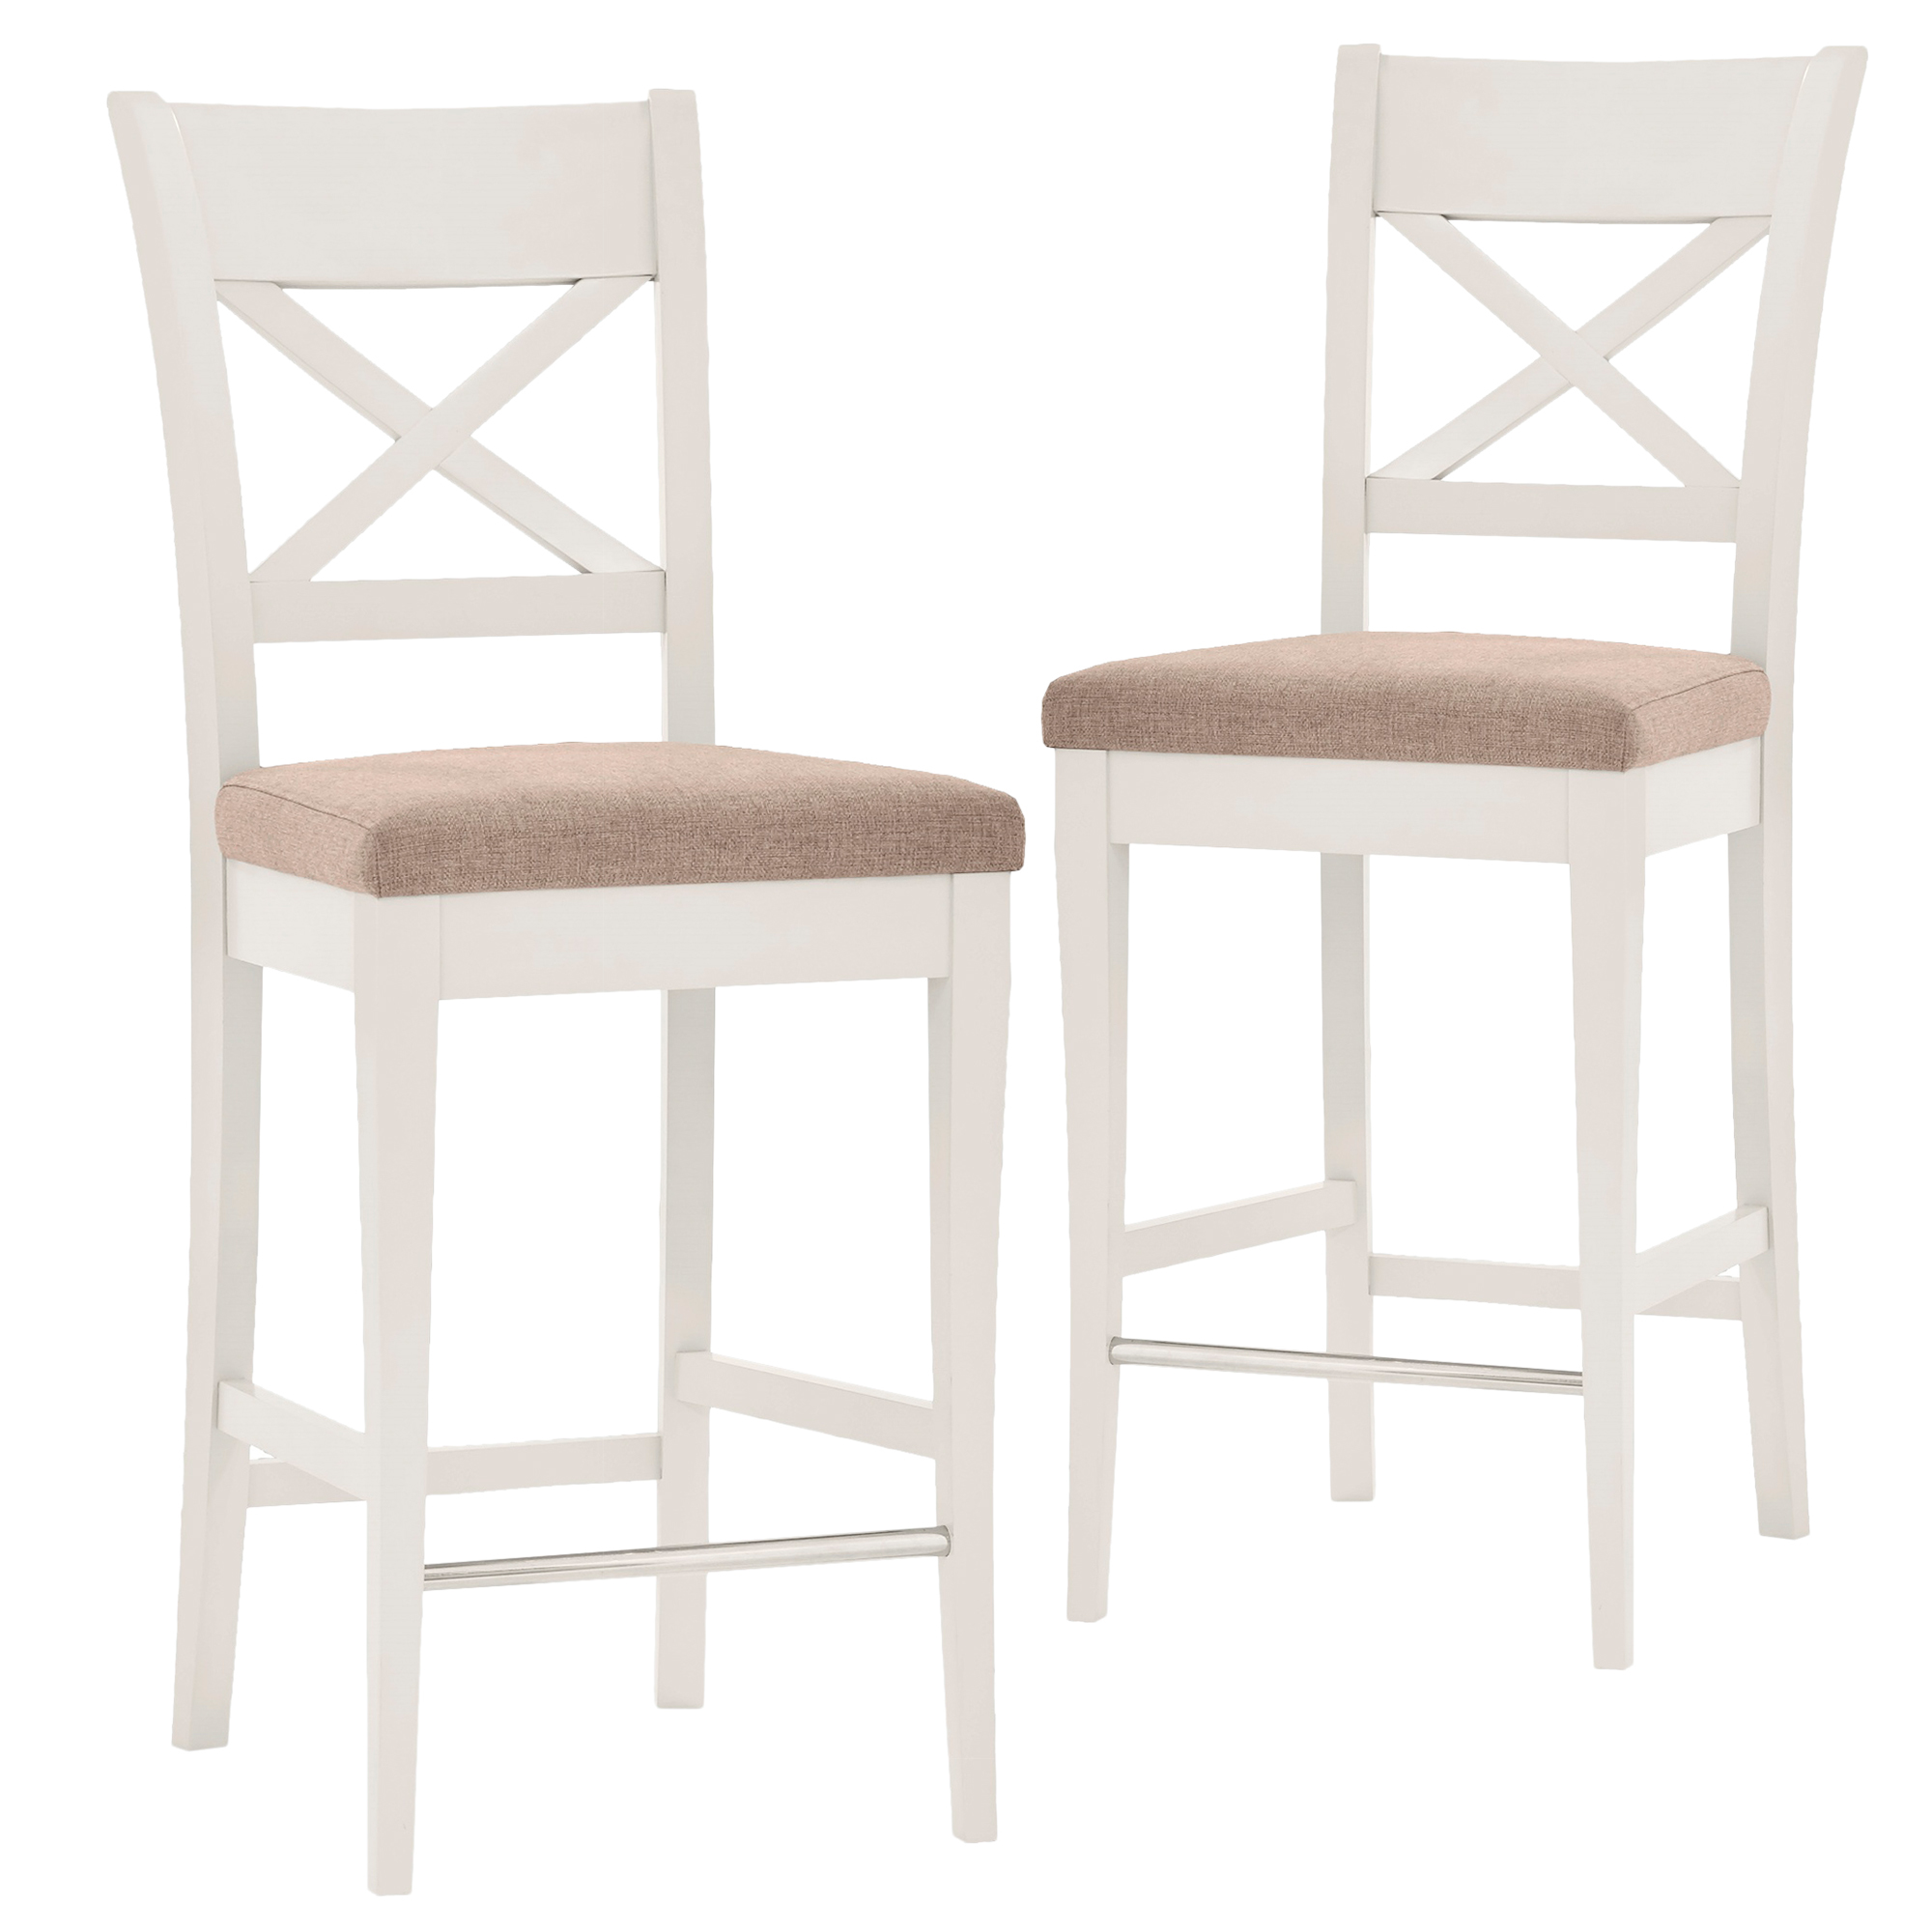 Perfect Emilia French Provincial Cross Back Bar Stools | Temple & Webster QY16